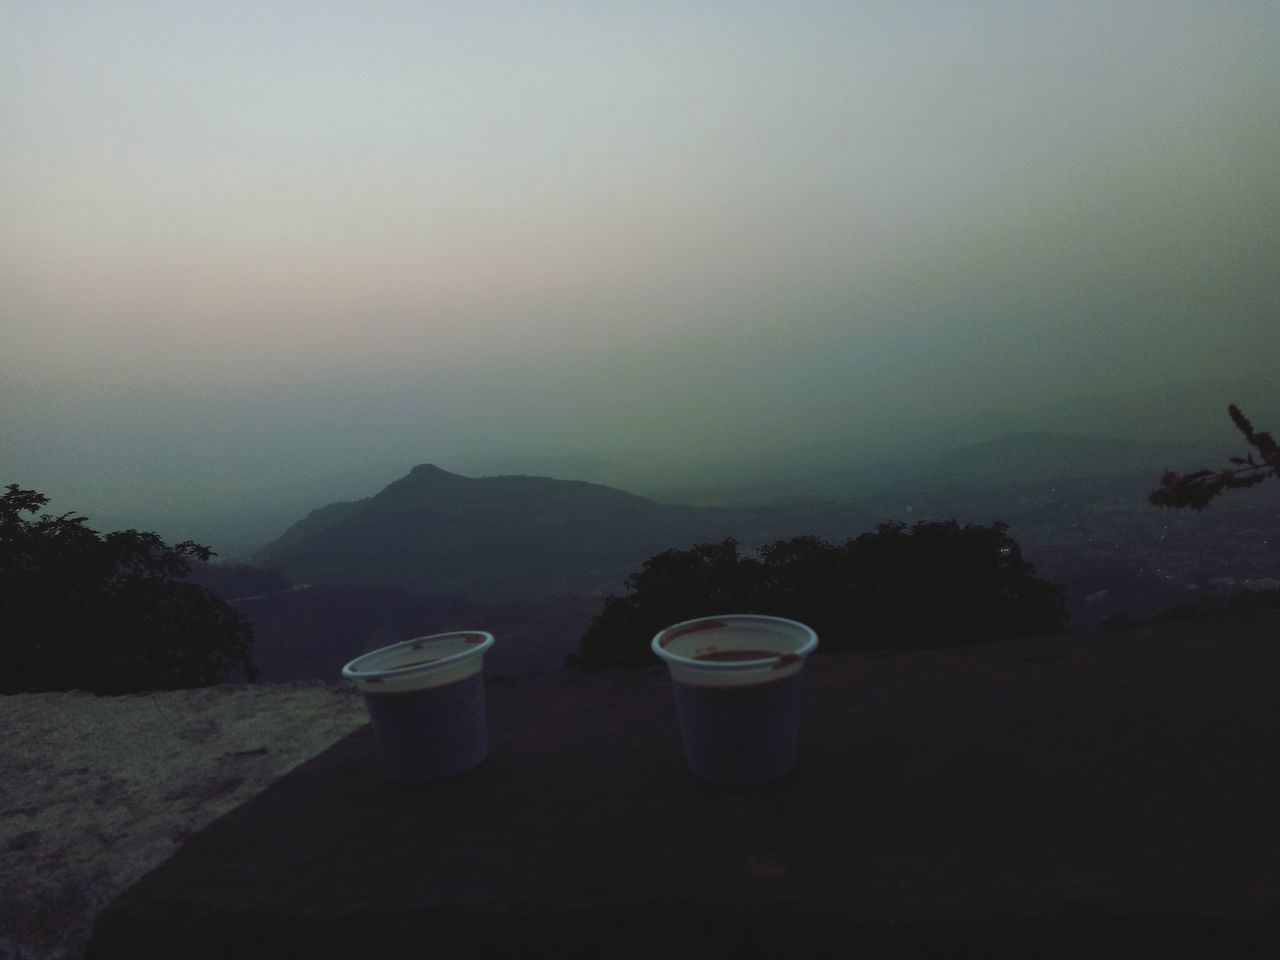 Tree Mountain Refreshment No People Fog Water Outdoors Nature Sky Drink Day Freshness Low Angle View Sunset Tree Travel Destinations Togetherness One Person People Adults Only Bonding Close-up Beauty In Nature